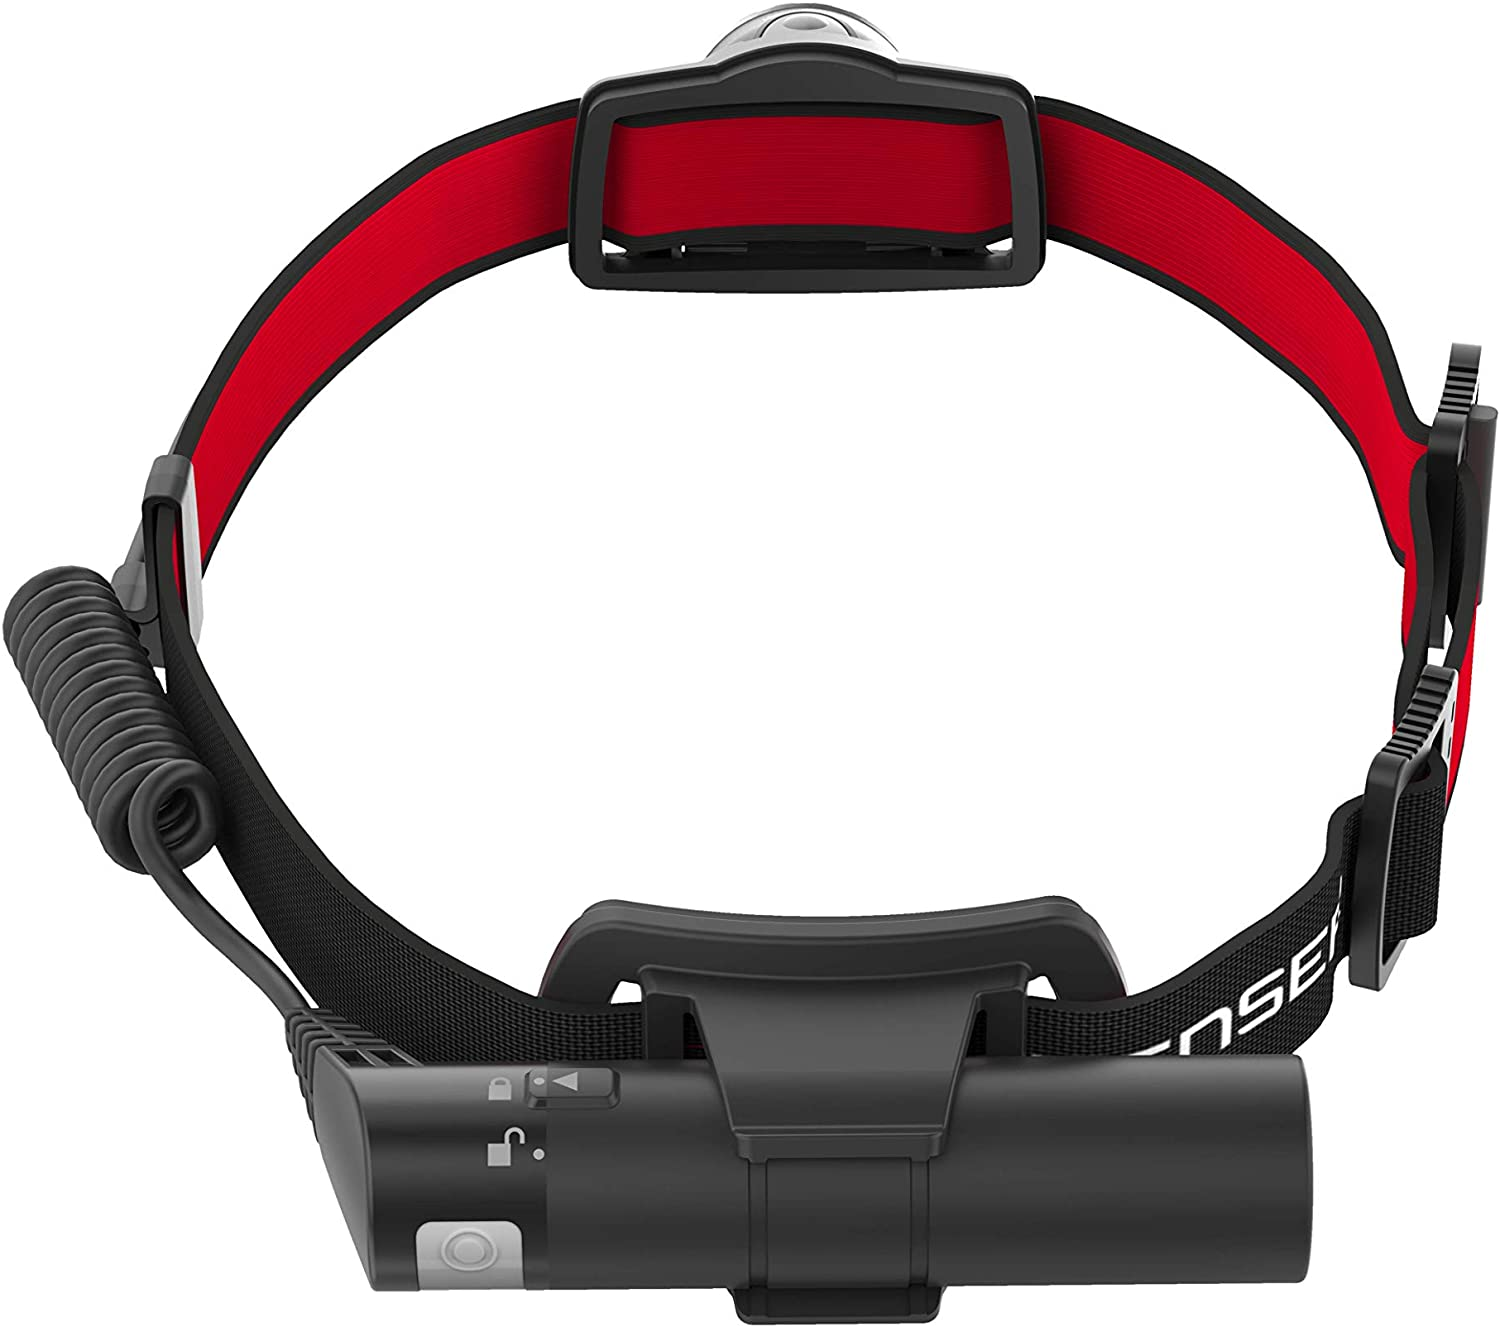 Ledlenser_LL500852_Headlamp 2 - H8R Rechargeable LED Head Torch – Max. 600 lm